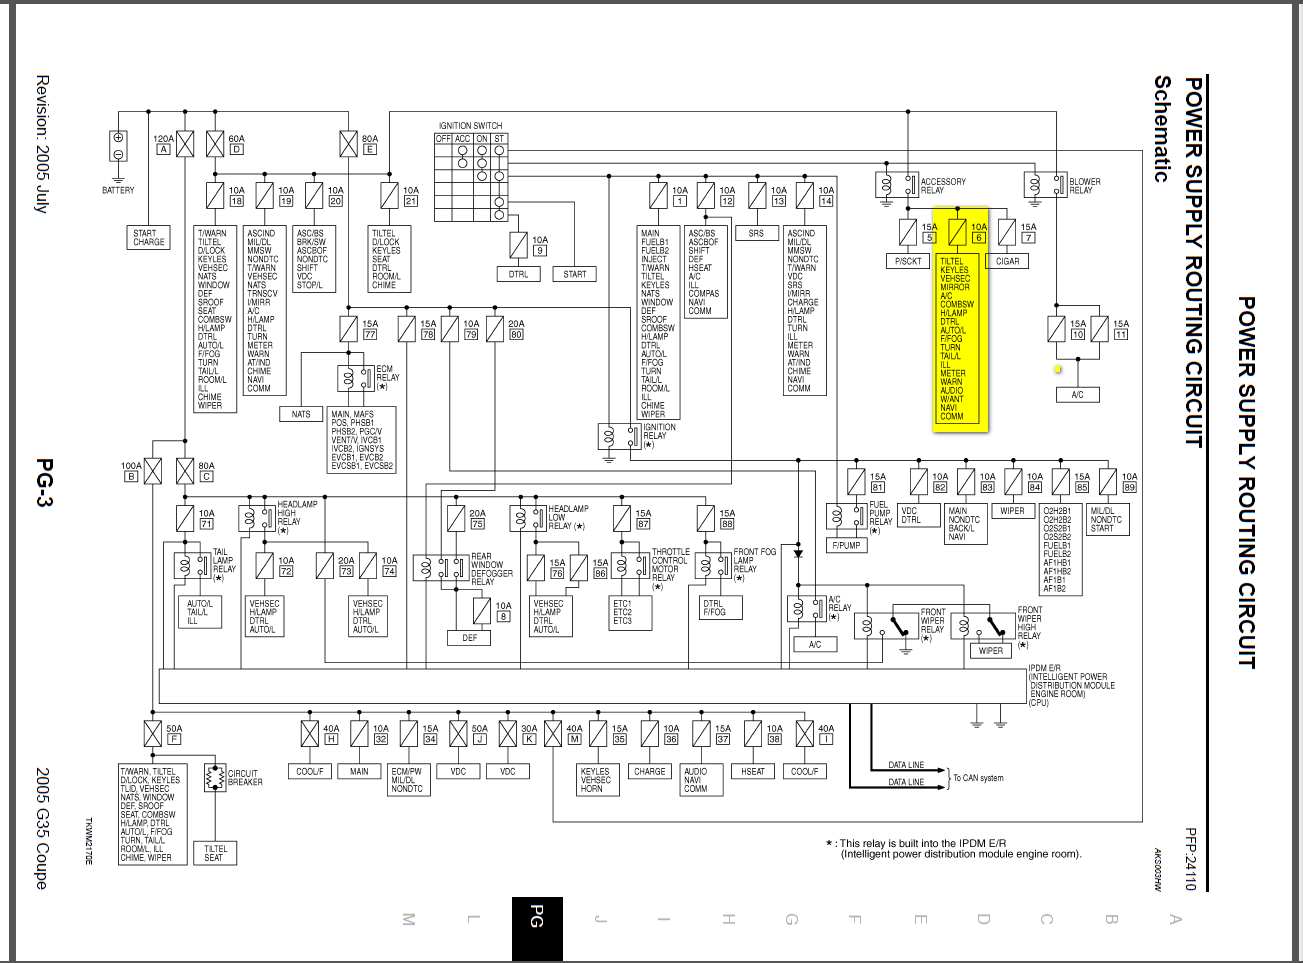 2012 08 02_141837_fuse_6 infiniti g35 radio wiring diagram 2008 infiniti g35 audio wiring infiniti fuse box diagram at bayanpartner.co